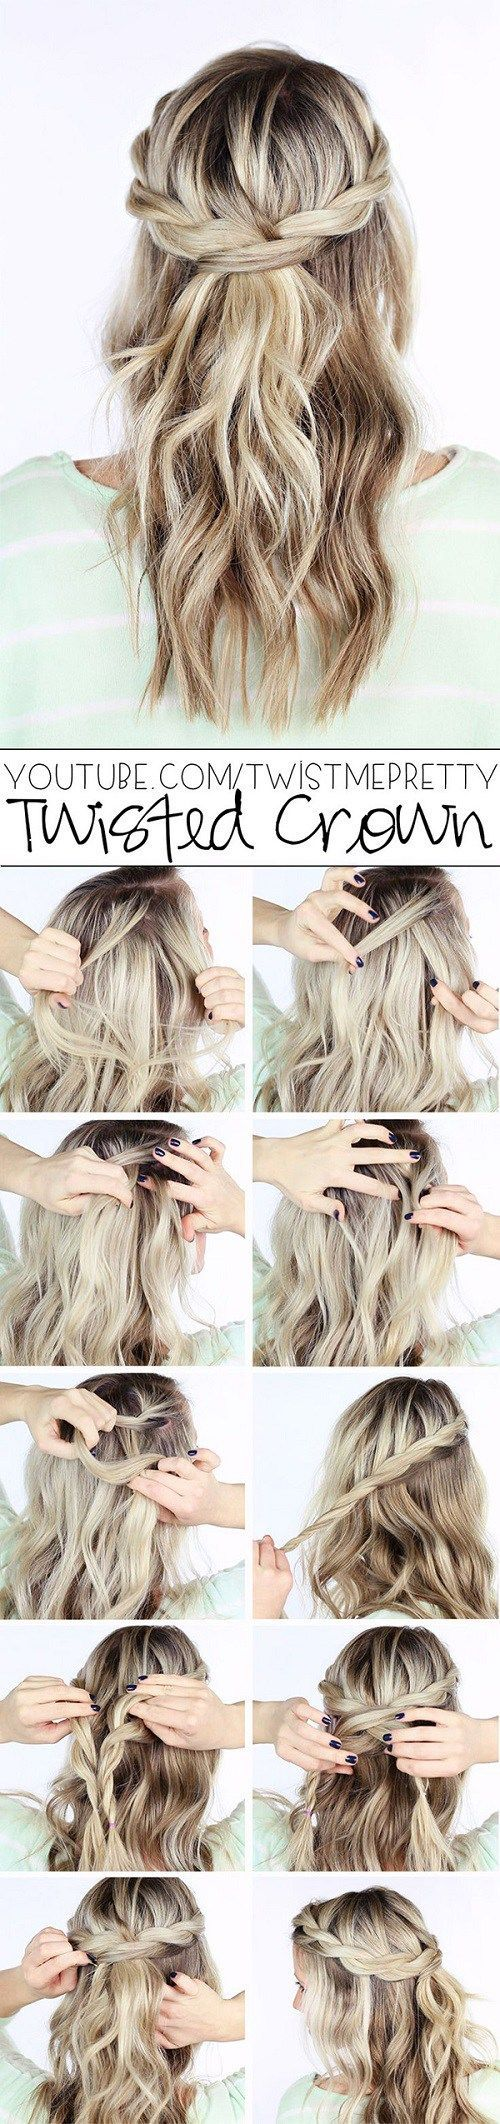 Braided+Half+Updo+Tutorial                              …